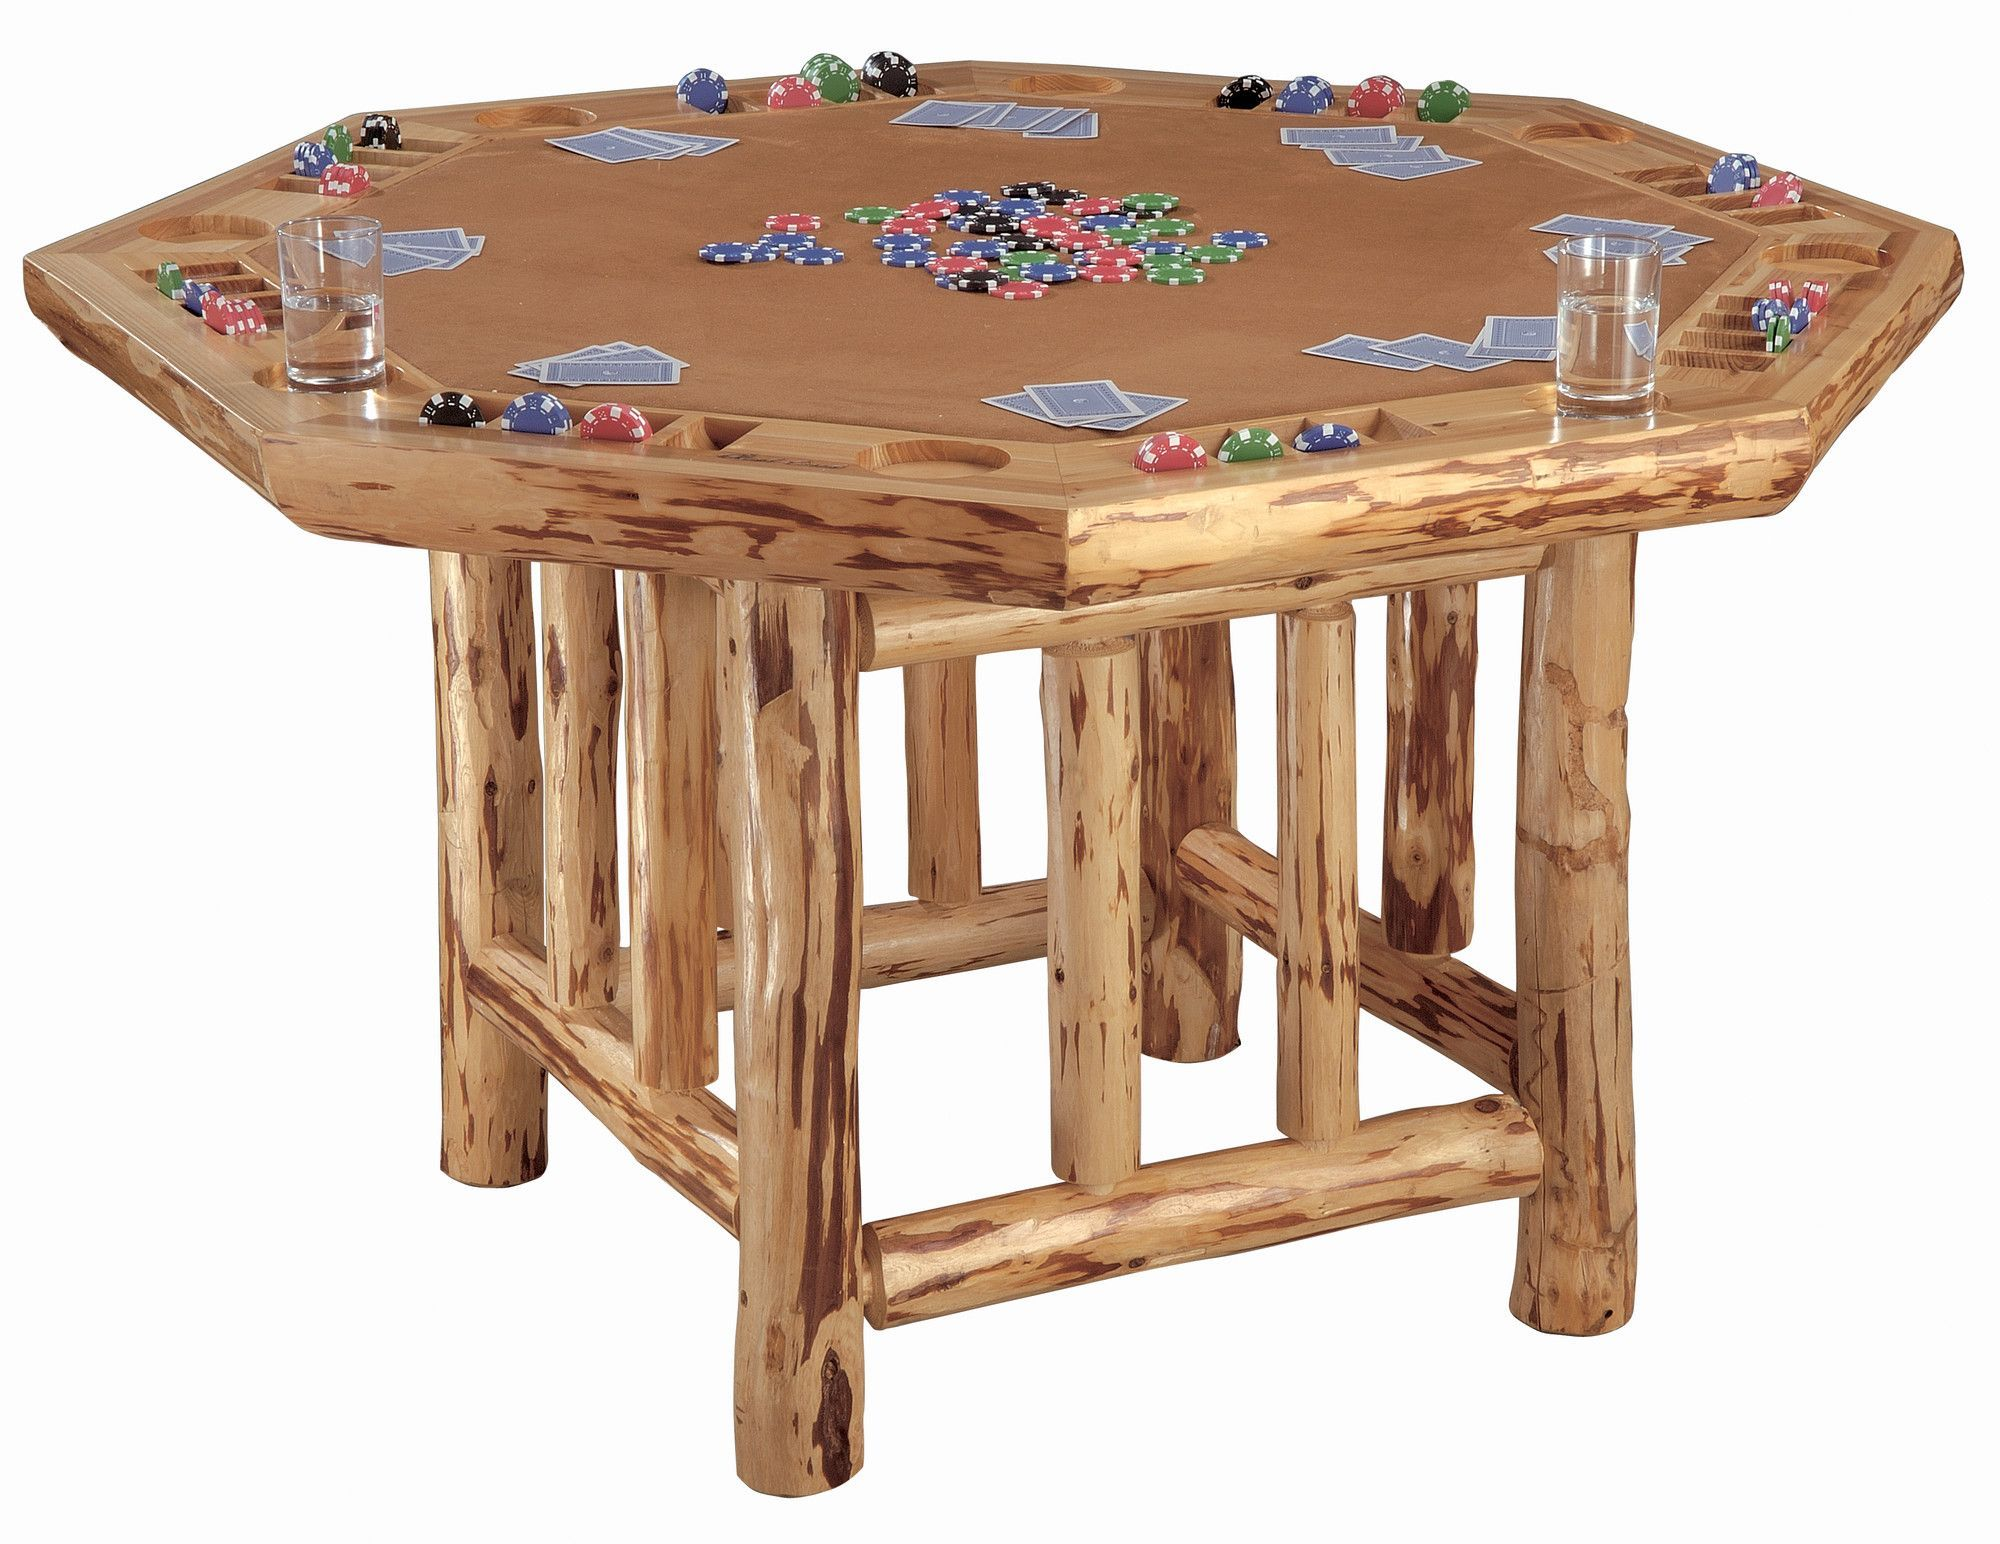 52 player octagon poker table octagon poker table poker table 52 player octagon poker table watchthetrailerfo